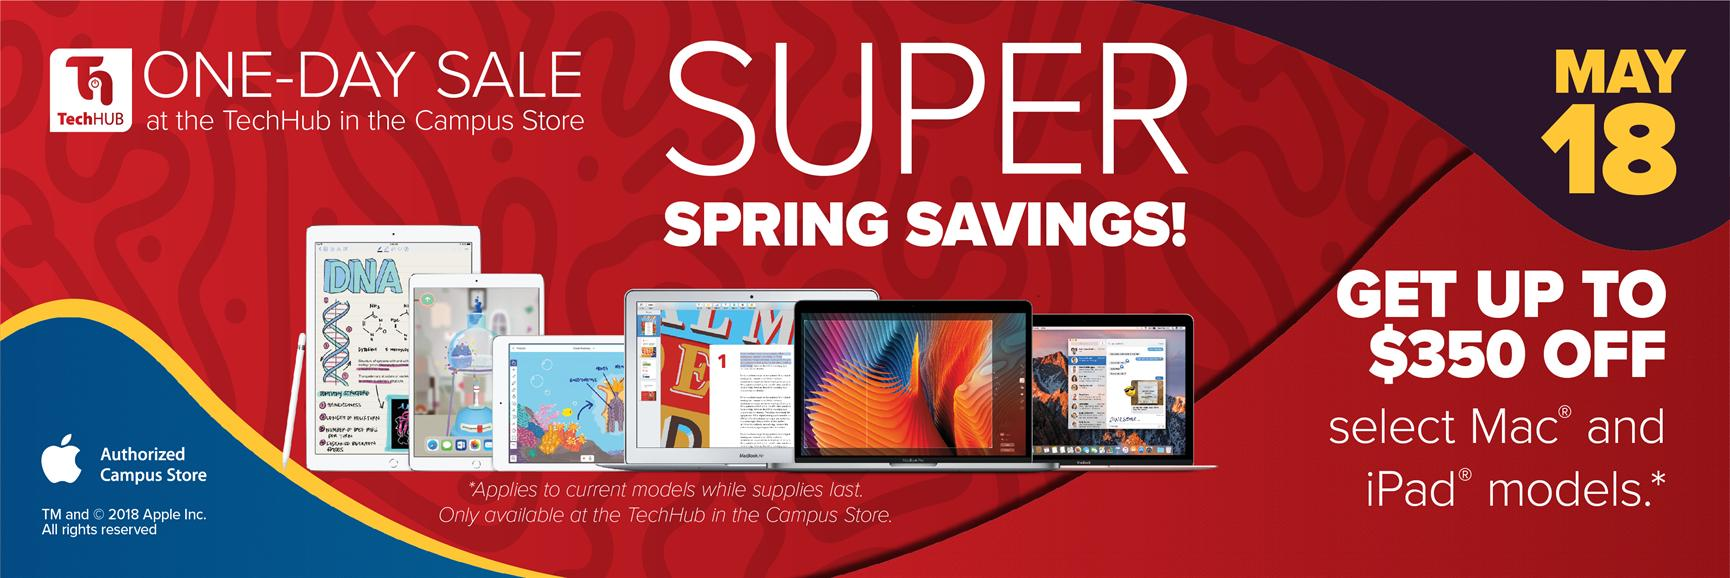 Apple® One-Day Sale